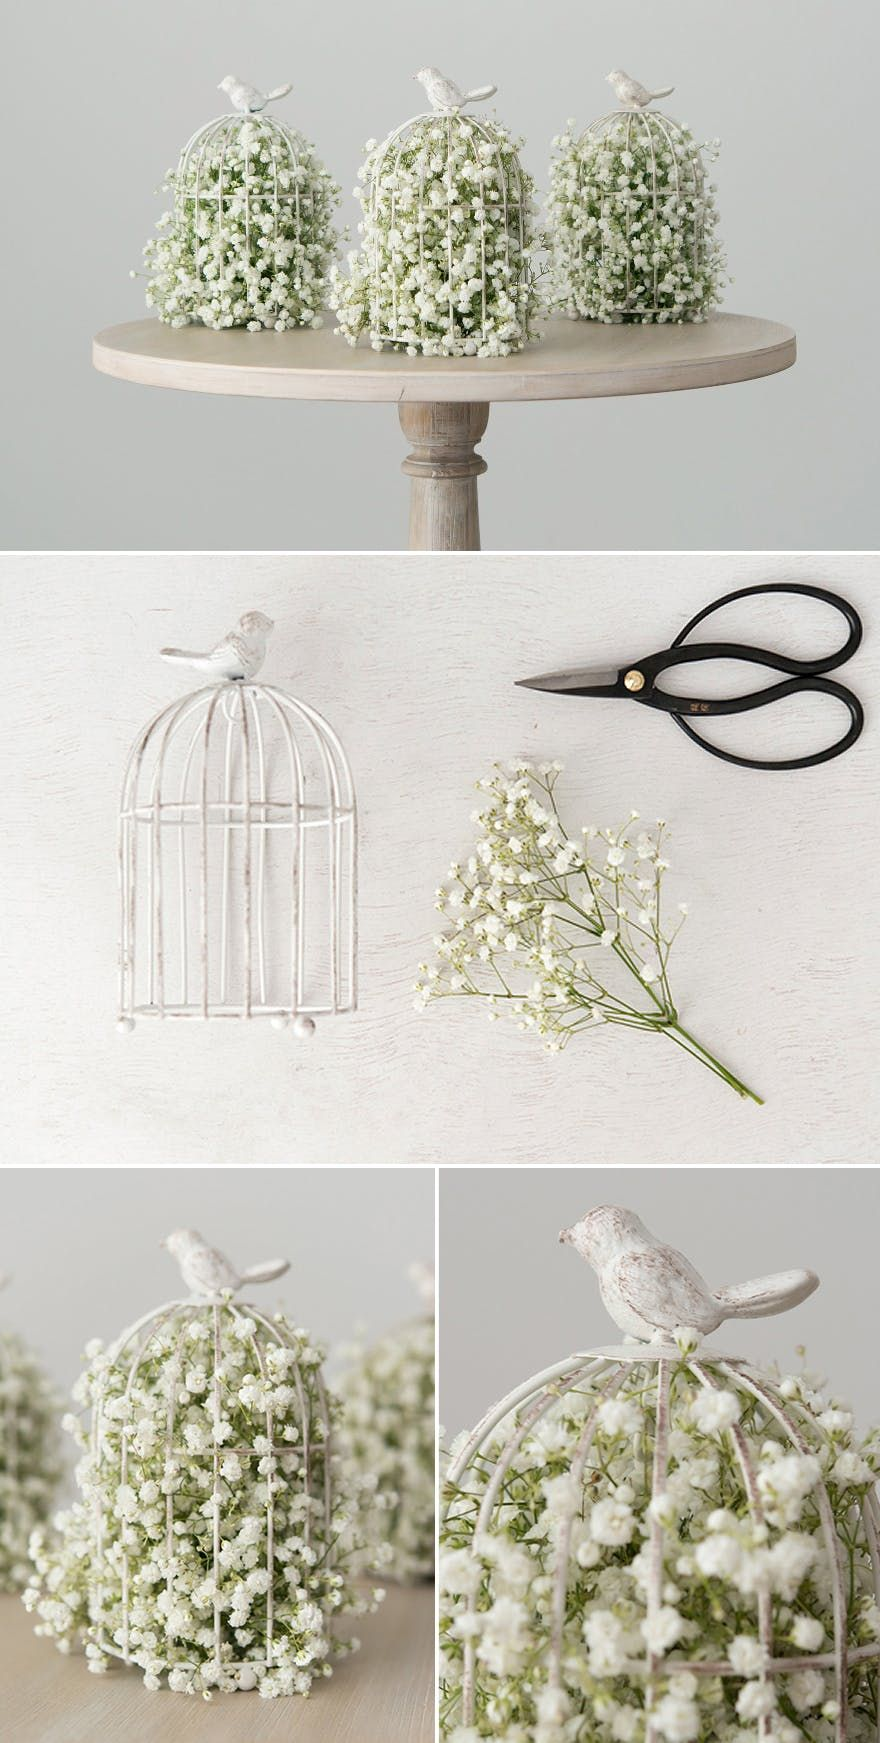 You'll Be Spoilt For Choice with These 50 Stunning DIY Centrepieces! #weddinggift